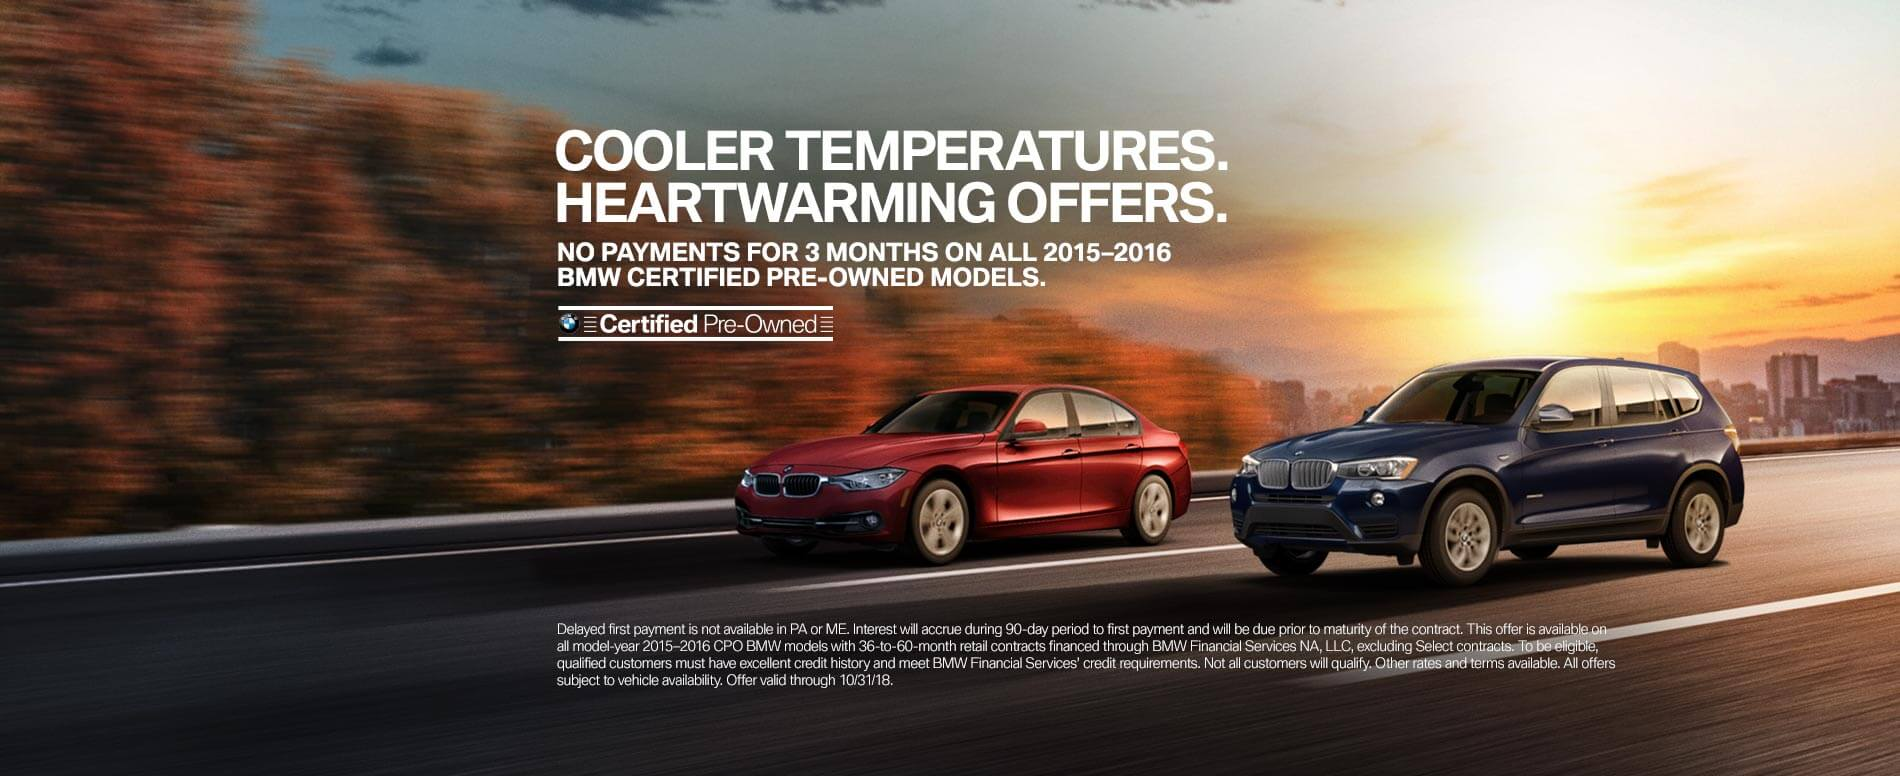 Certified Pre-Owned BMW Special Offer